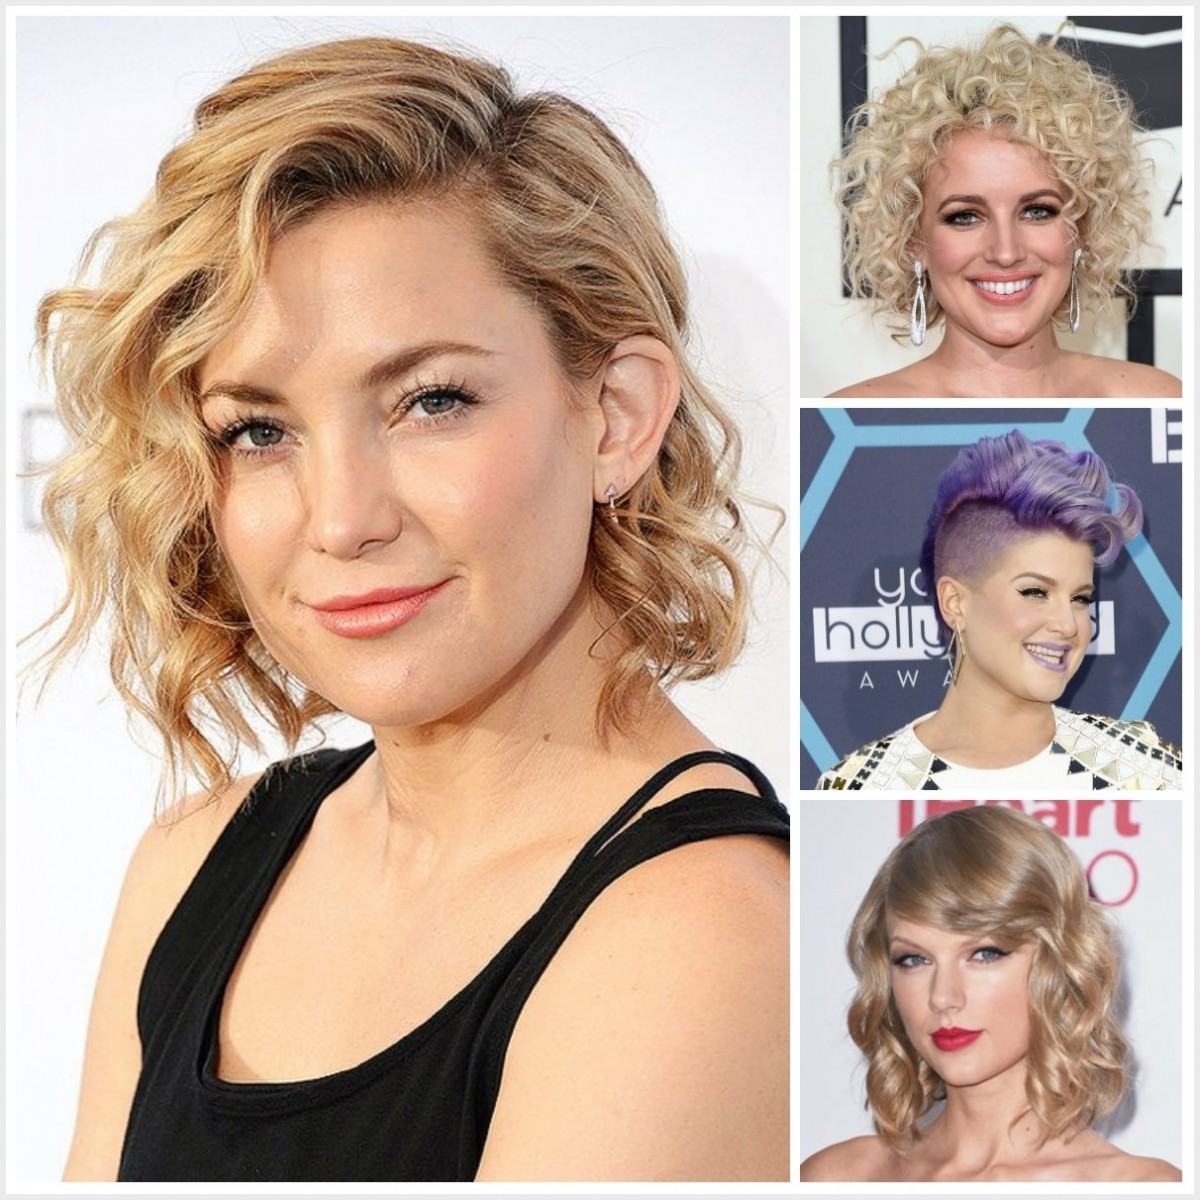 hair cutting style New Year Hair Styles: Best Hair Cutting Style 2019 unnamed file 284